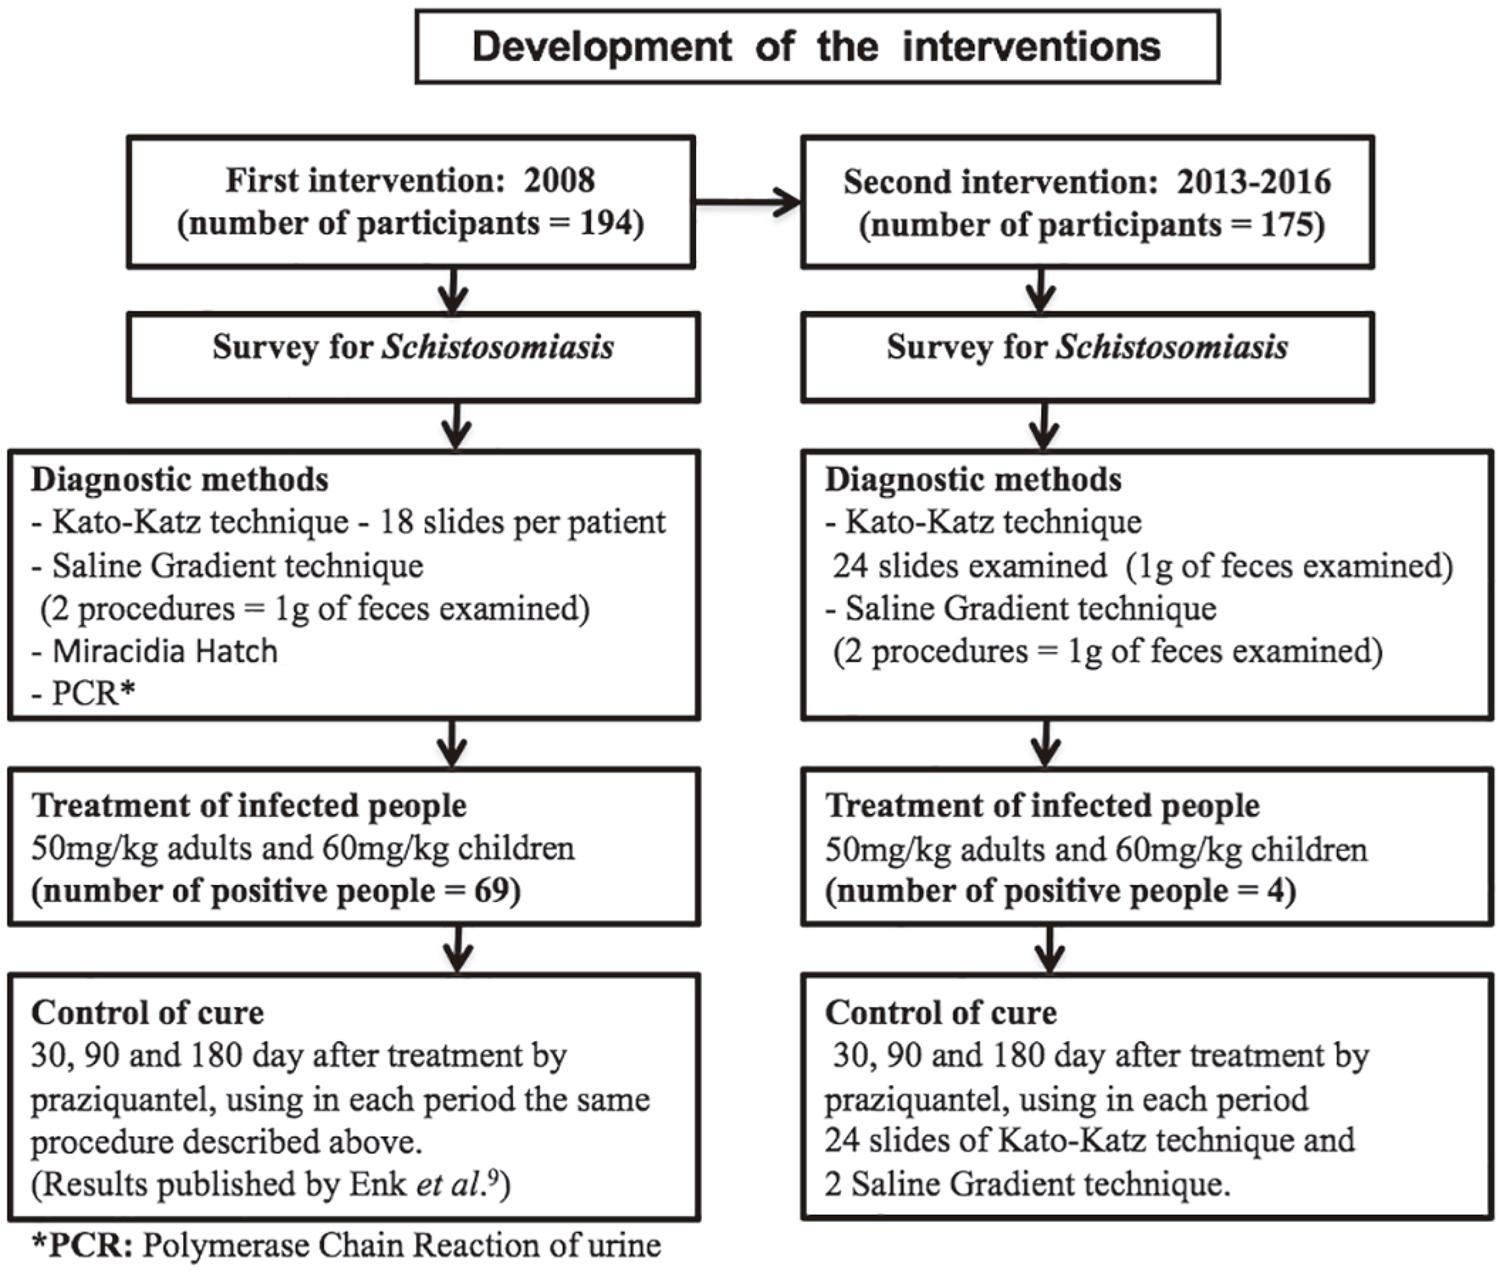 Development of the interventions to detect the percentage of new cases of schistosomiasis in Pedra Preta – Brazil.